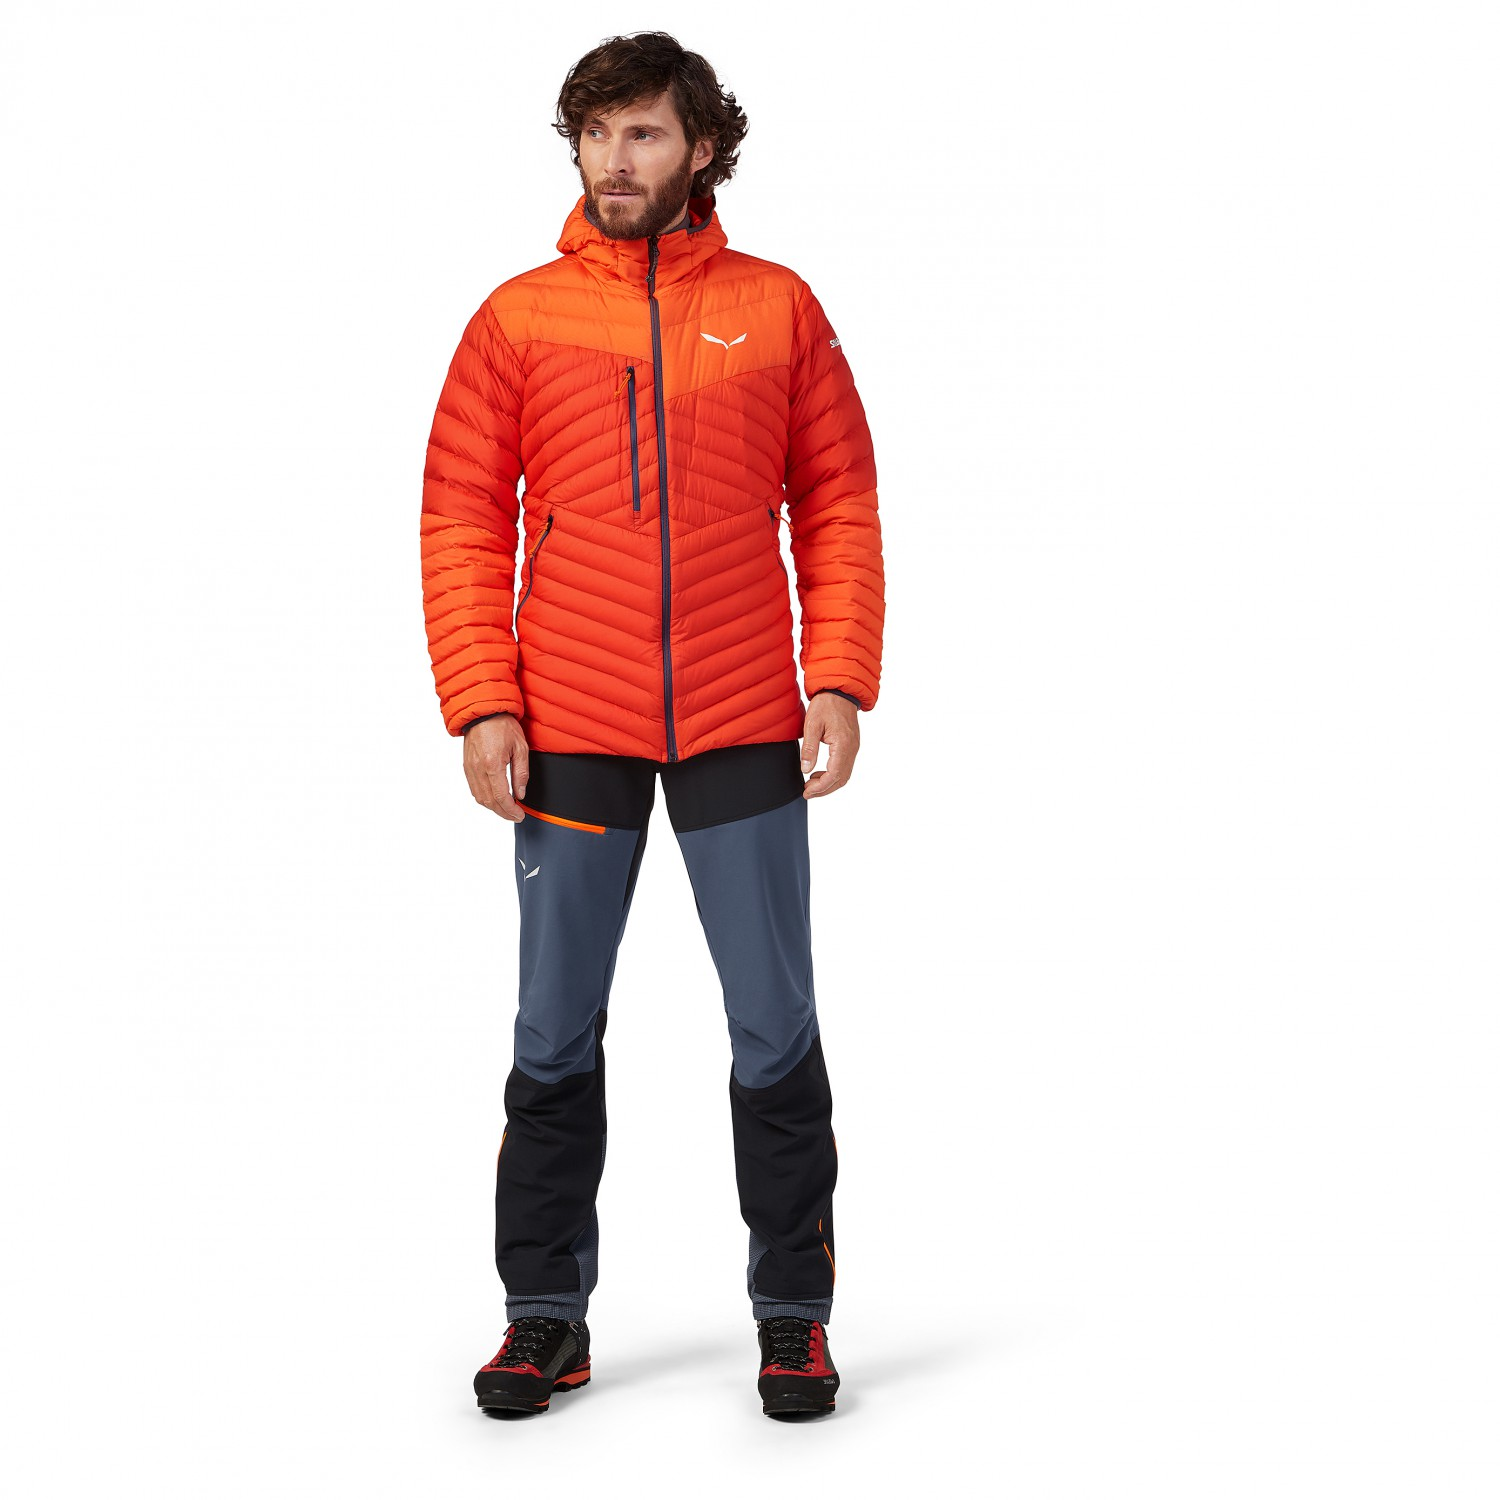 Salewa Ortles Light 2 Down Hood Jacket Daunenjacke Poseidon 8730 | 50 (EU)